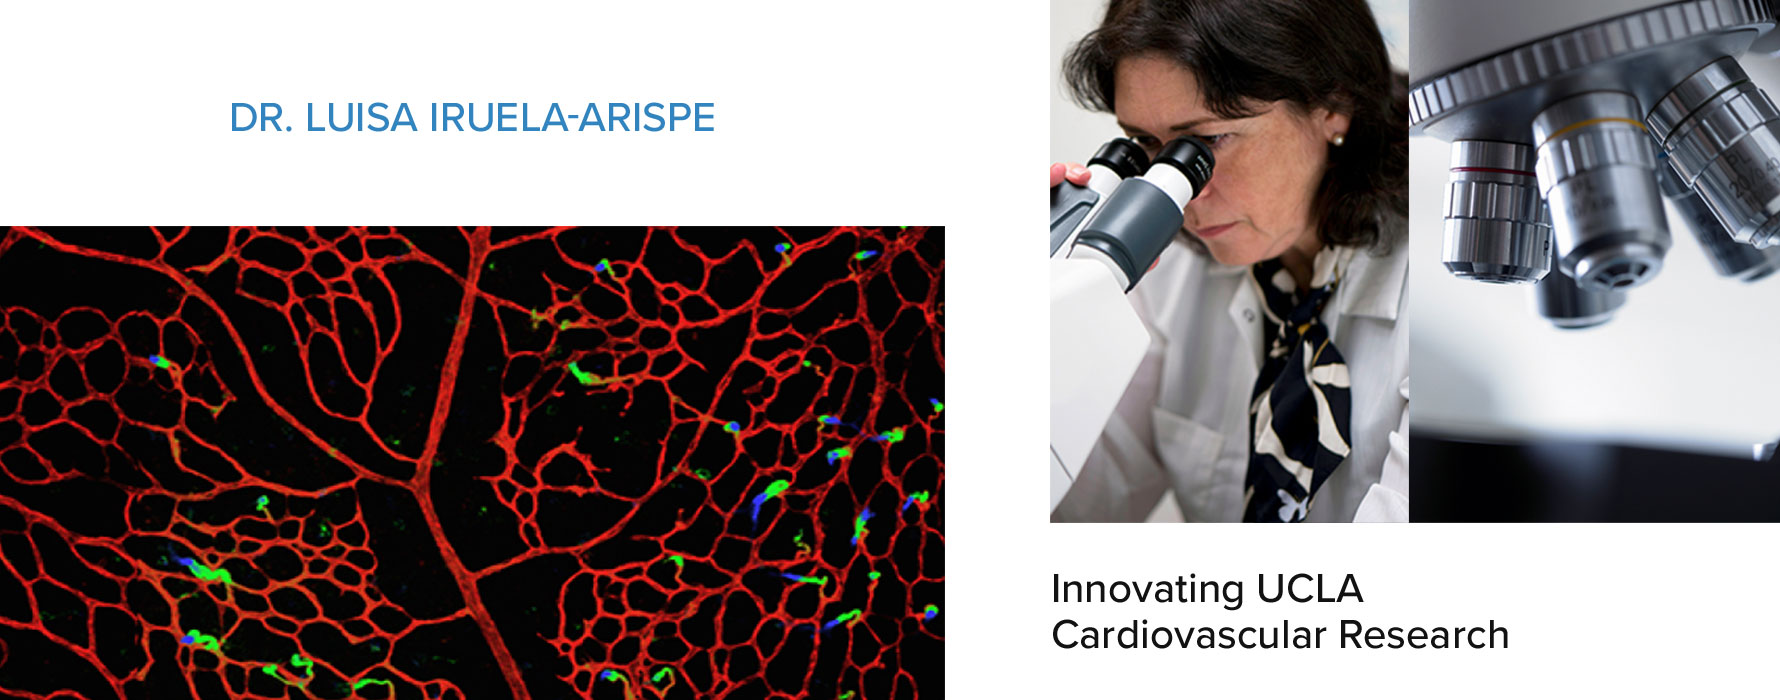 Dr. Luisa Iruela-Arispe, Innovating UCLA Cardiovascular Research